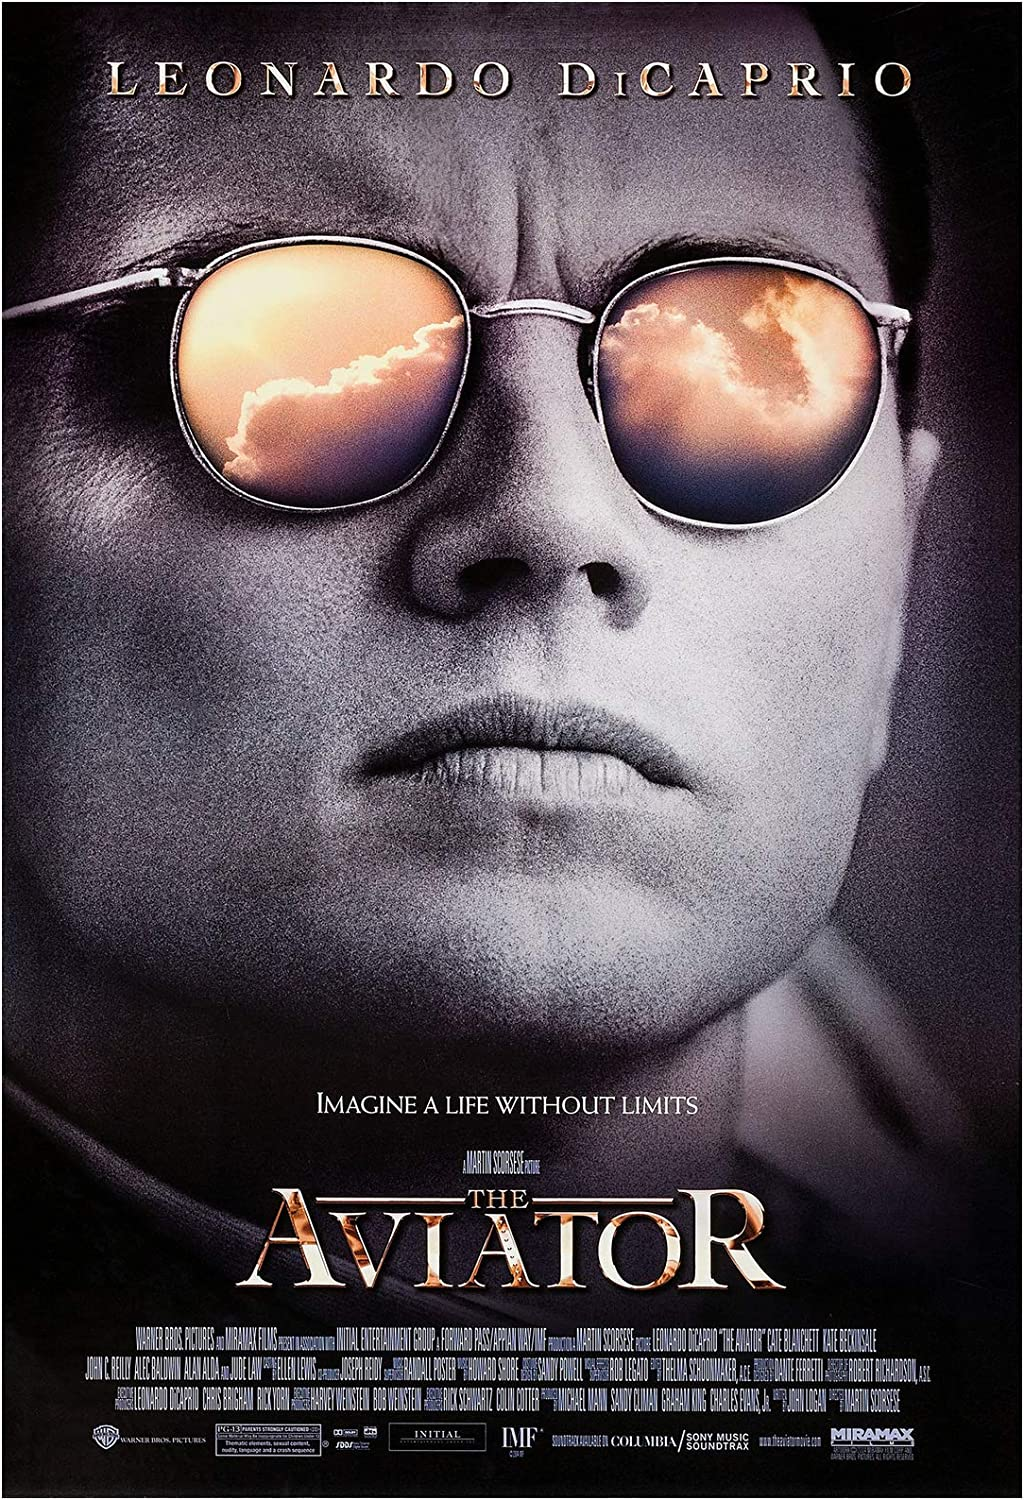 The Aviator Movie Poster 24 x 36 Inches Full Sized Print Unframed Ready for Display